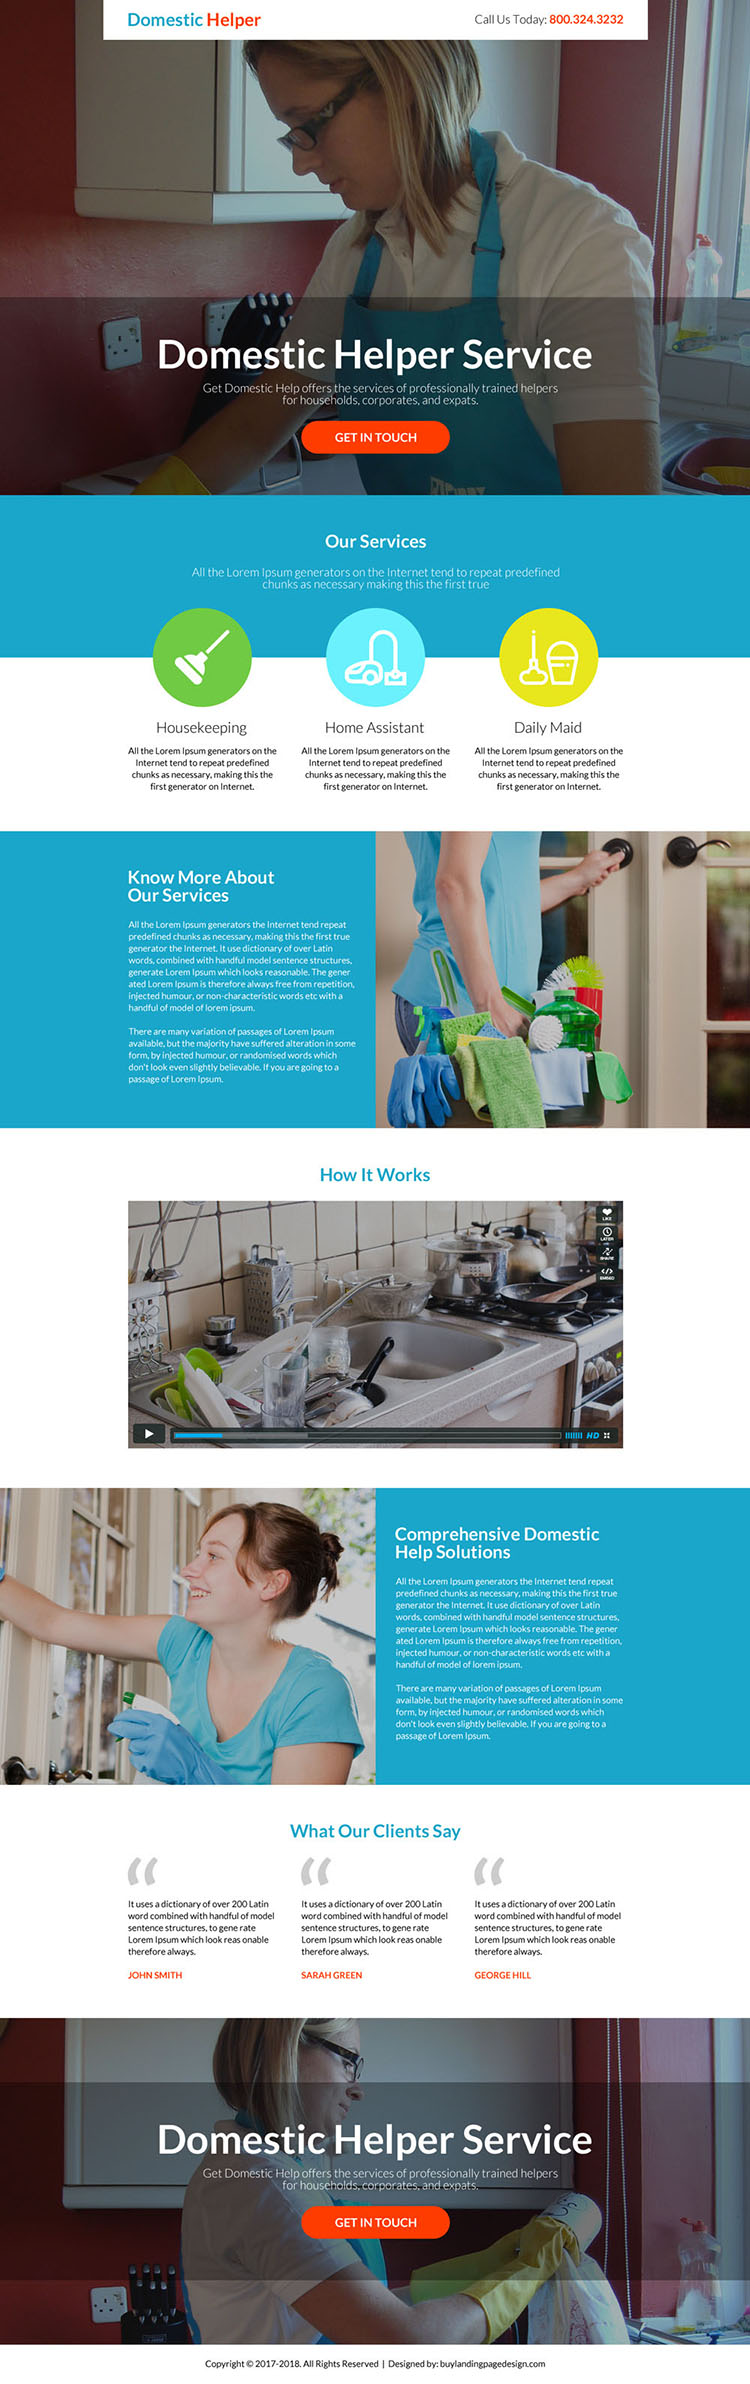 best domestic helper service responsive landing page